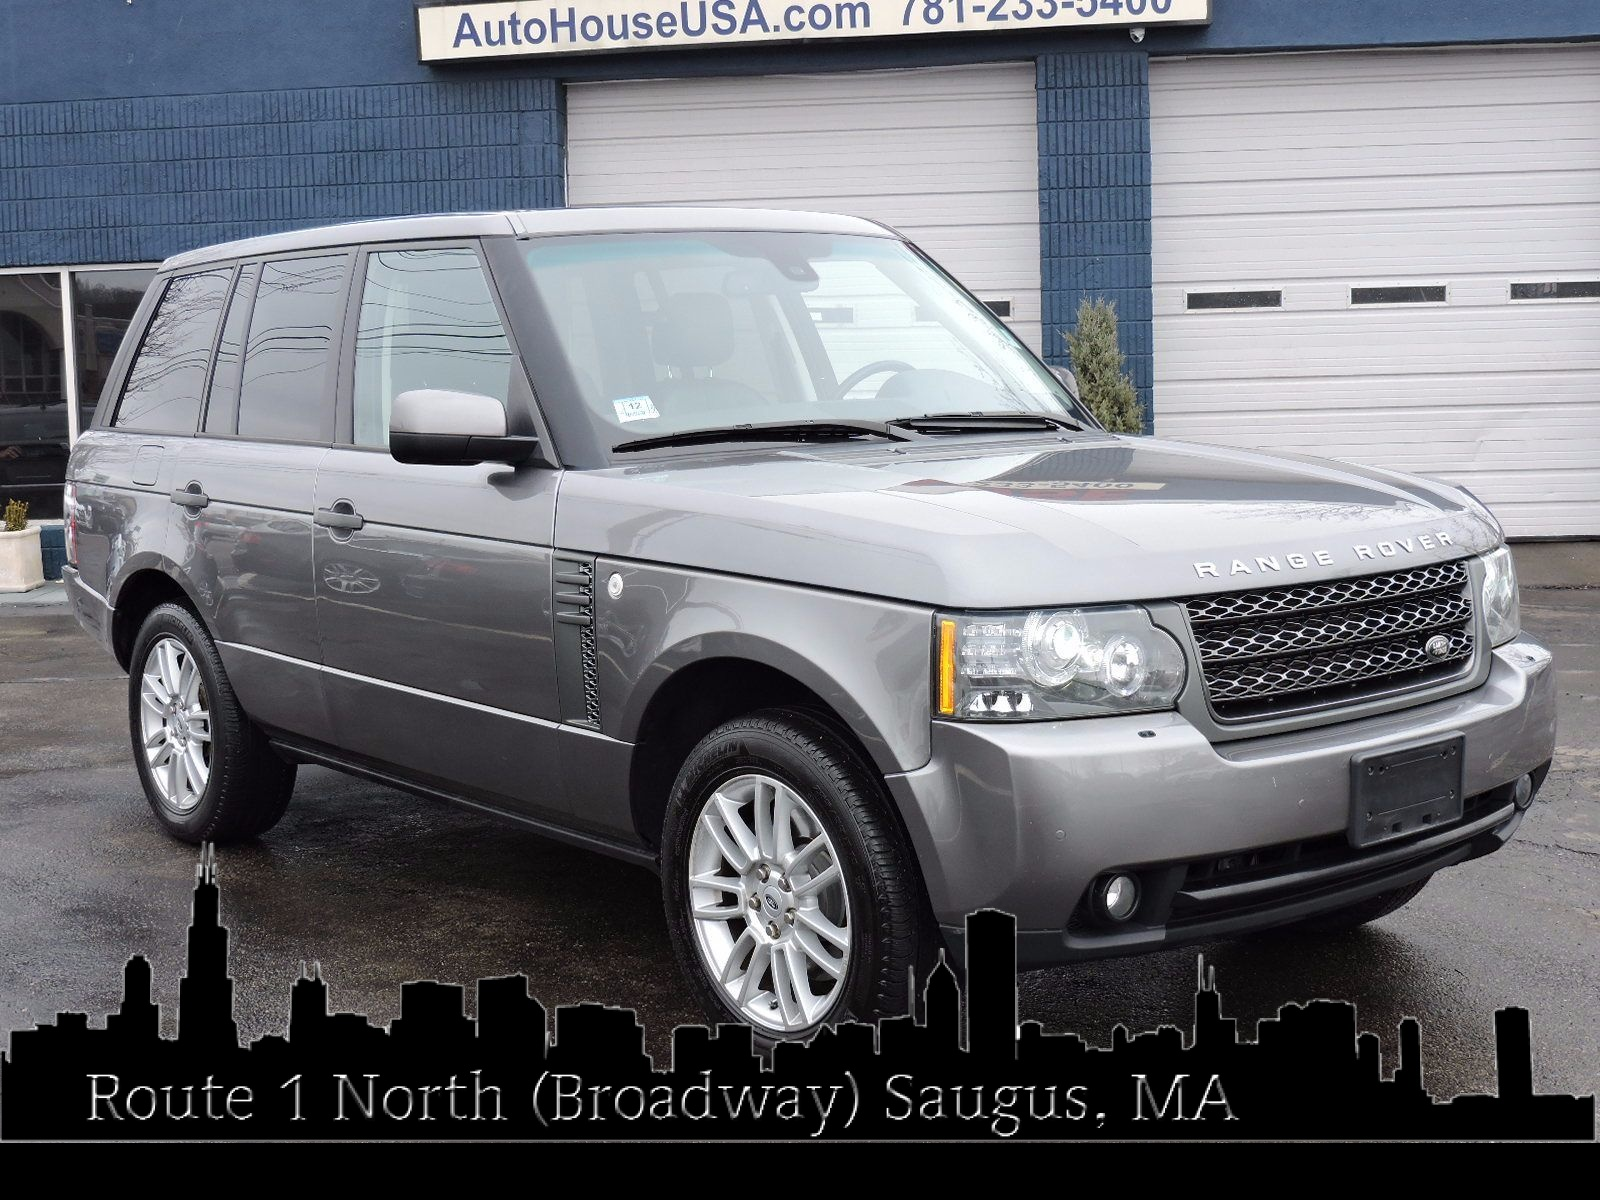 2011 Land Rover Range Rover - HSE - All Wheel Drive - Navigation